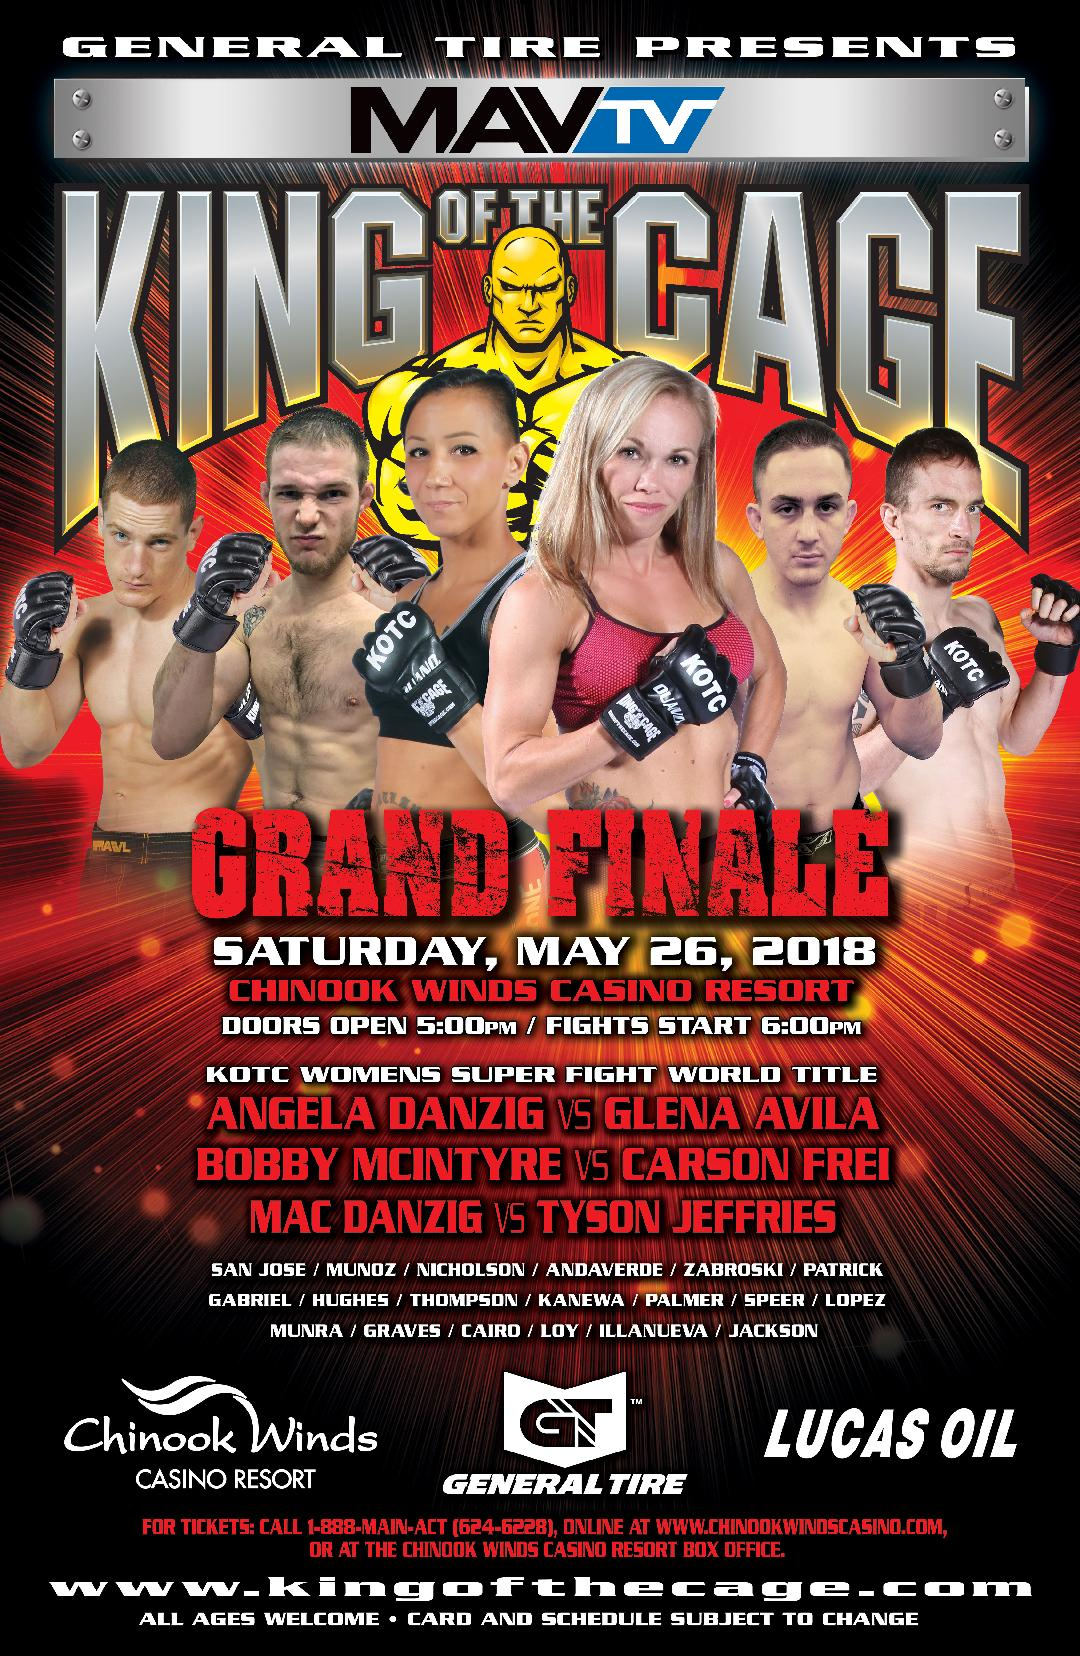 "King of the Cage Announces Fight Card for Chinook Winds Casino Resort on May 26 ""GRAND FINALE"""